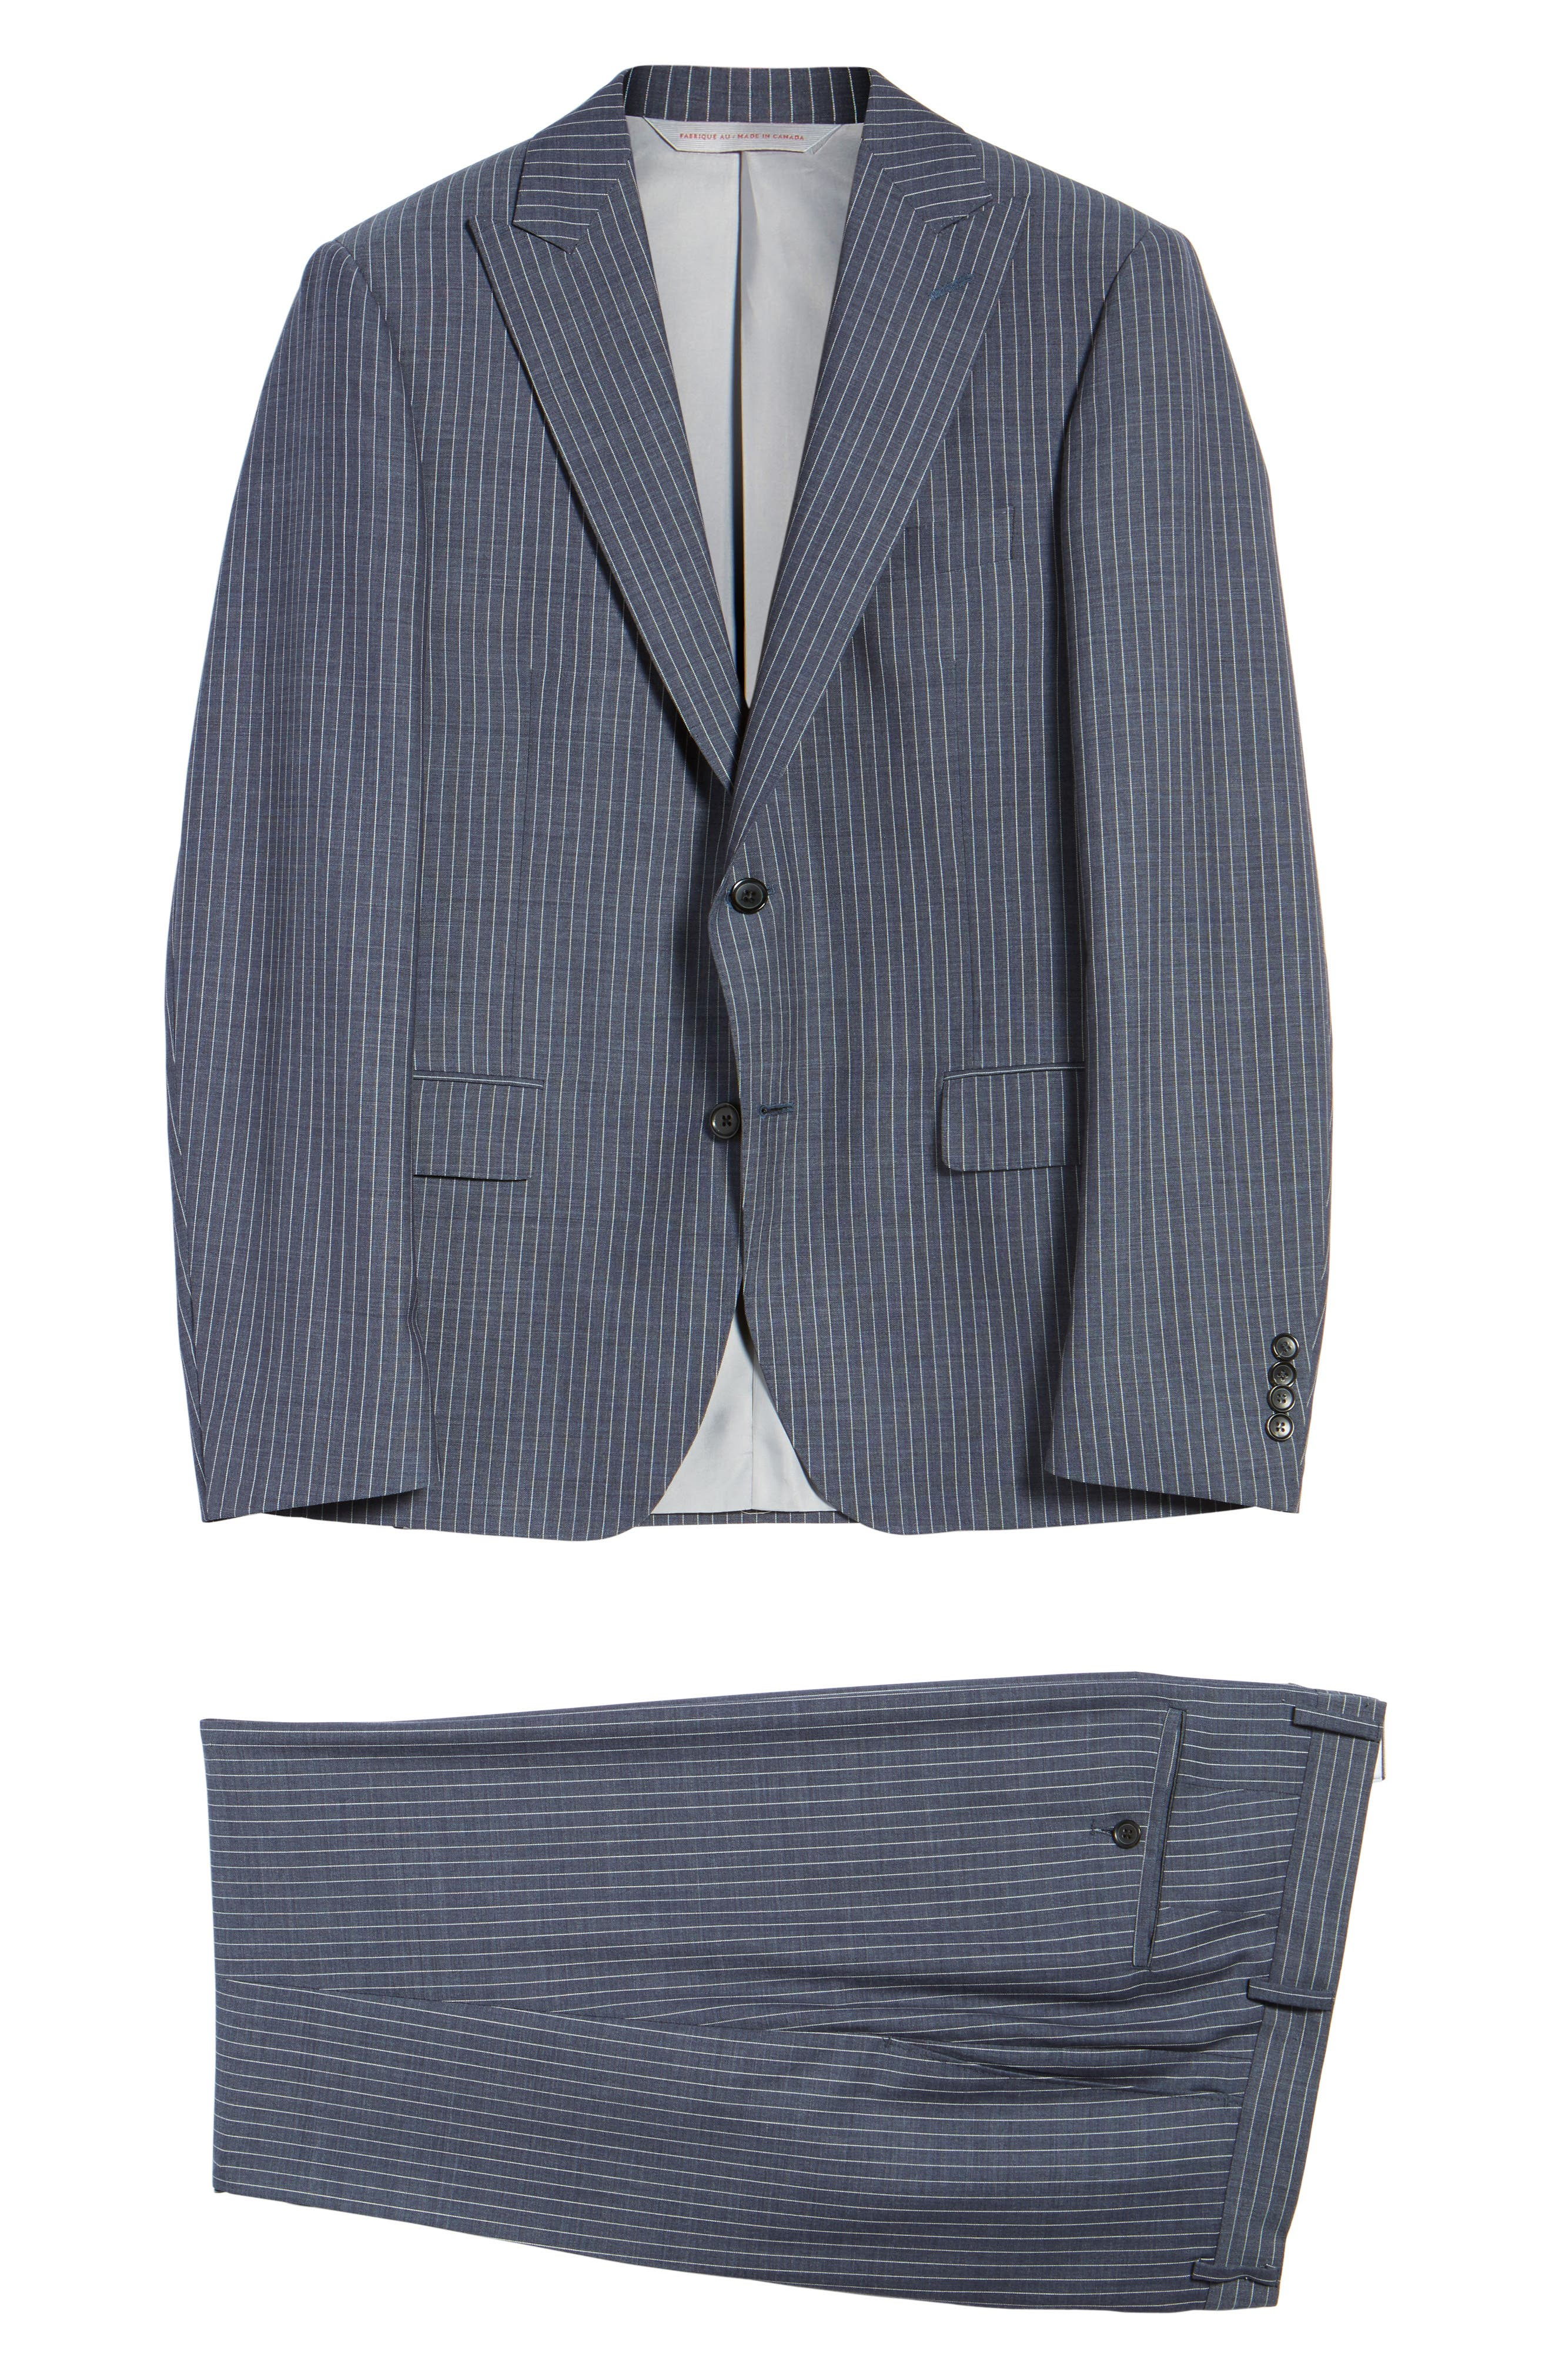 Beckett Classic Fit Stripe Wool Suit,                             Alternate thumbnail 7, color,                             Light Blue